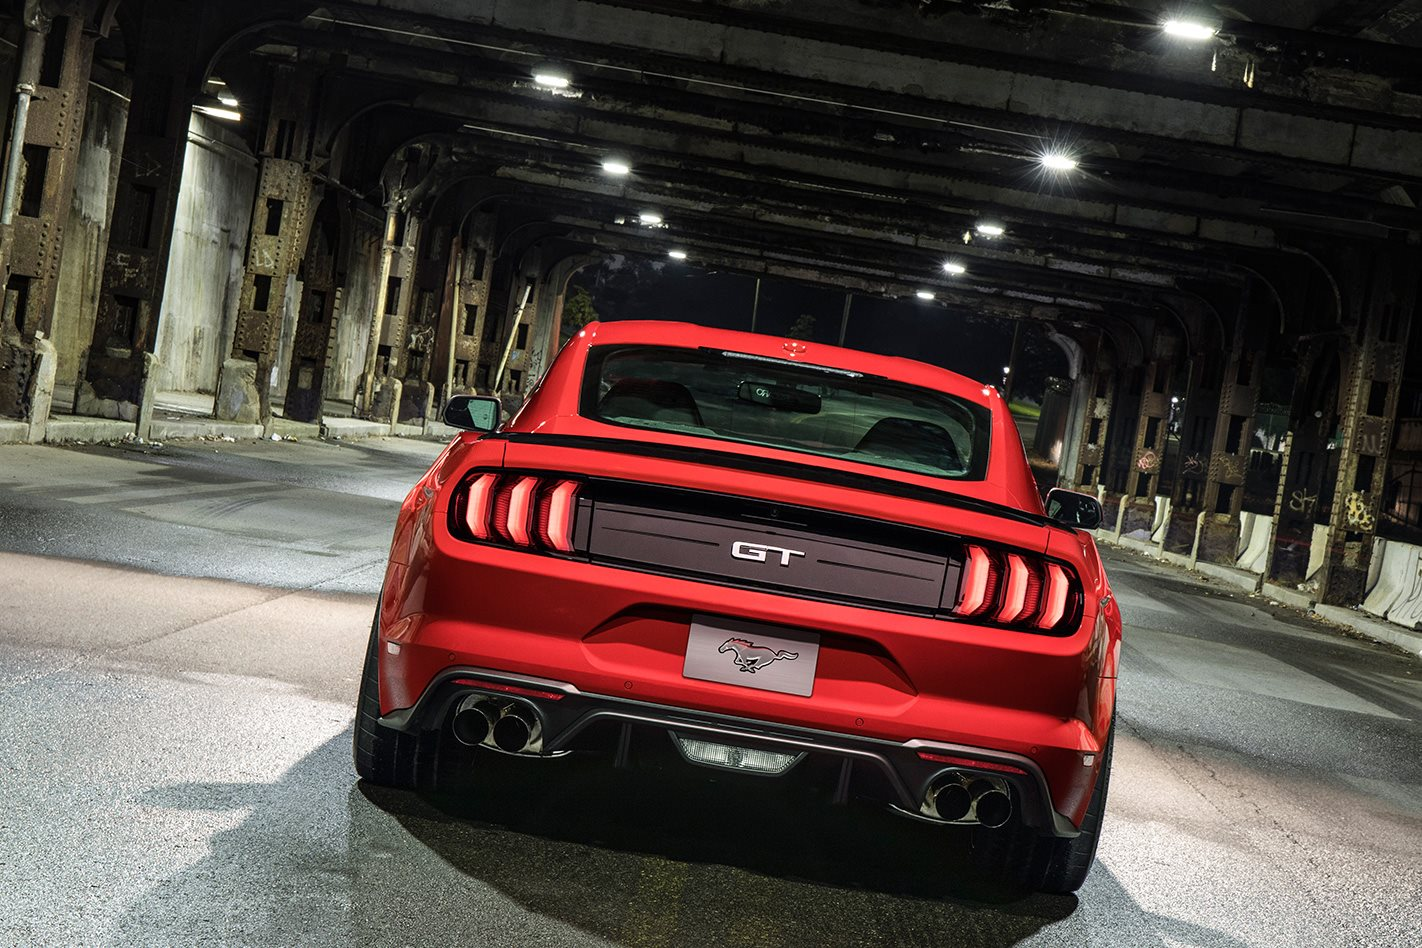 2018-Ford-Mustang-Performance-Pack-tailights.jpg